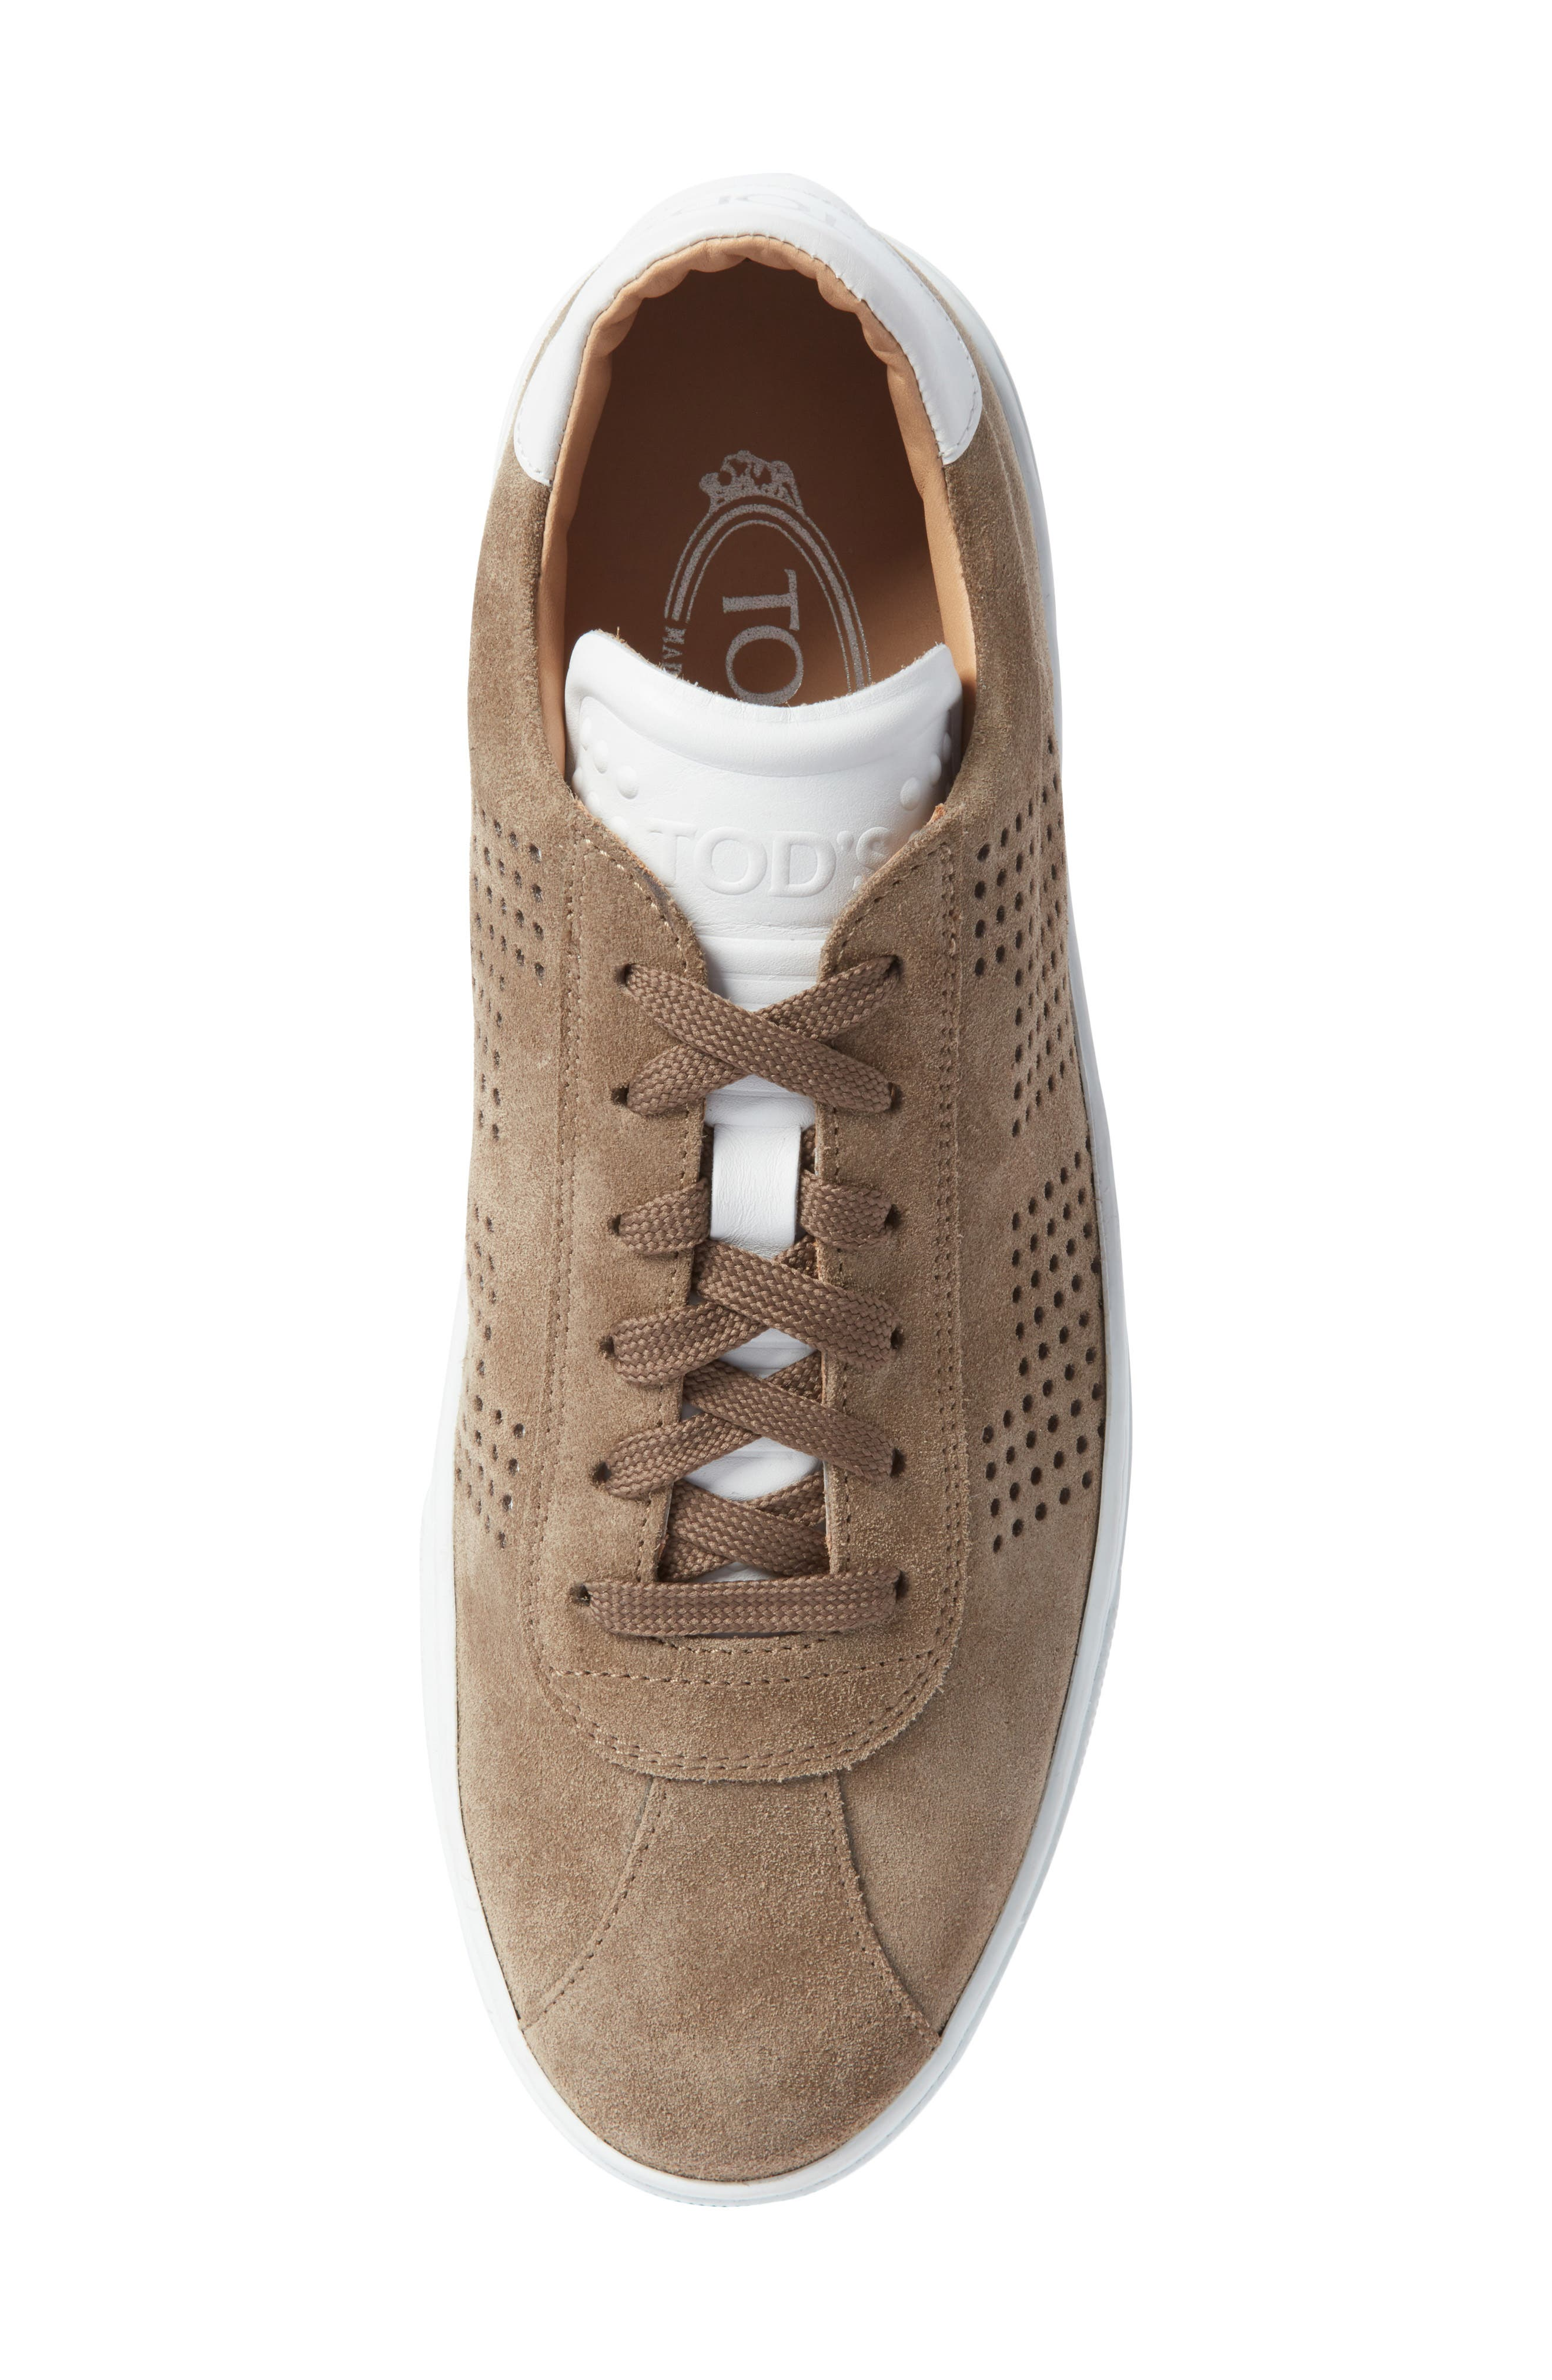 Cassetta Sneaker,                             Alternate thumbnail 5, color,                             237